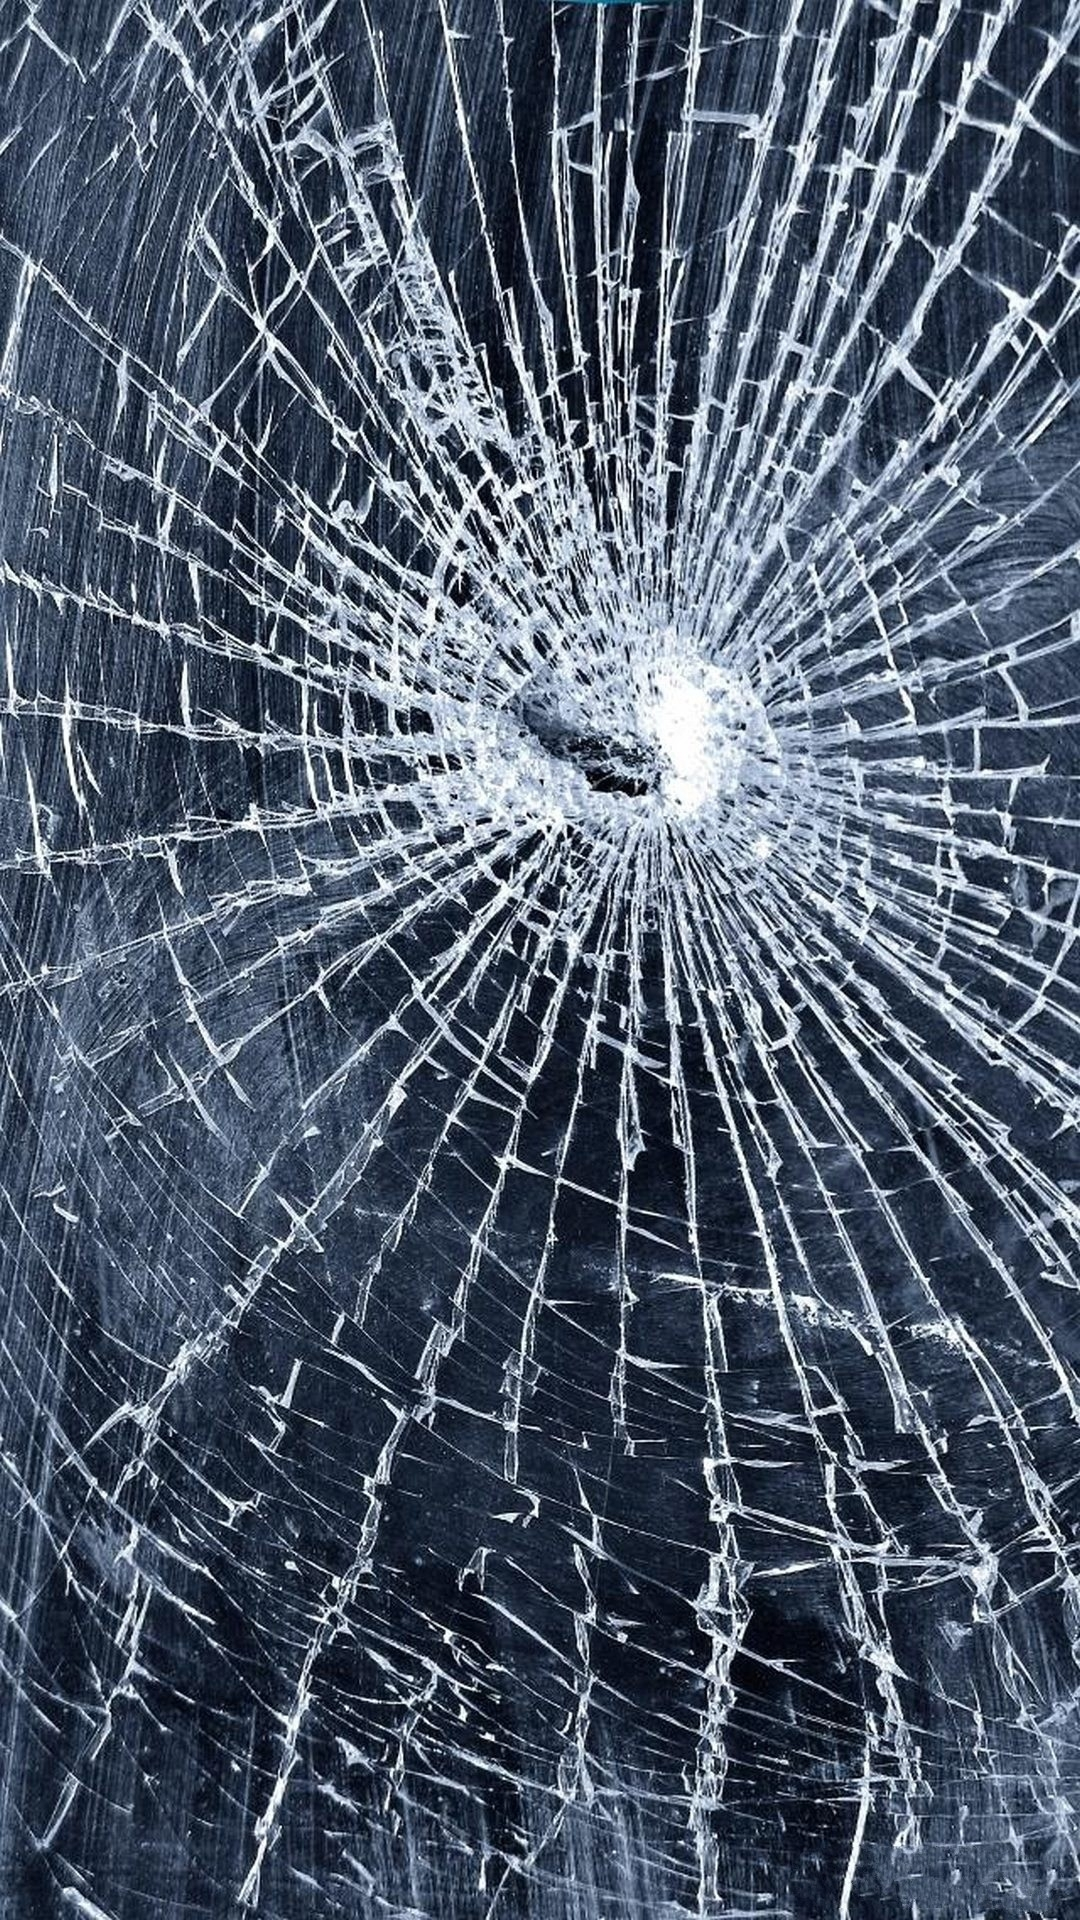 10 Best Cracked Screen Wallpaper Android FULL HD 1080p For PC Background